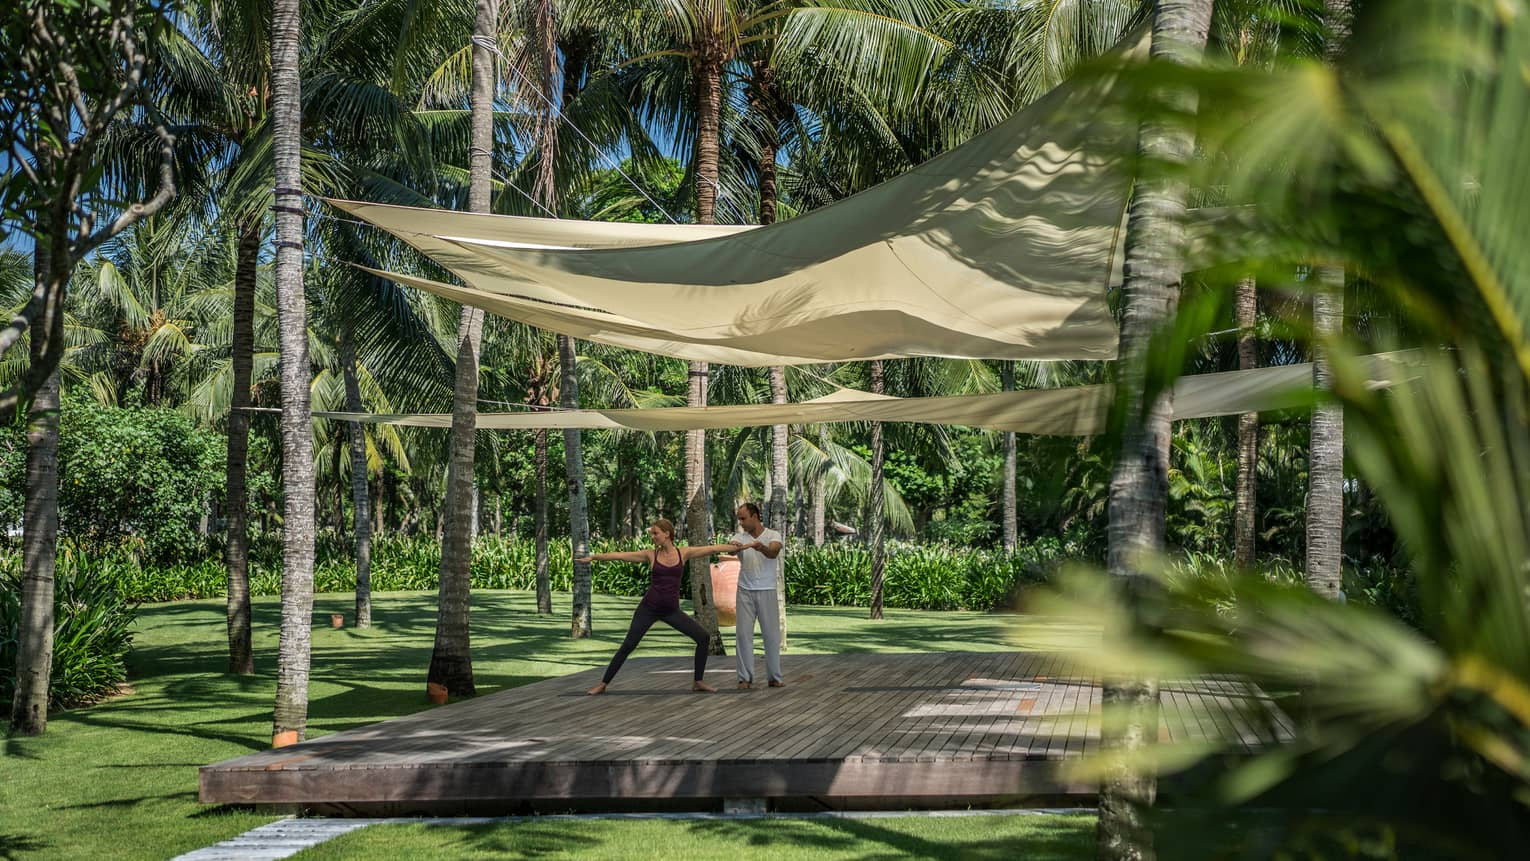 Yogi helps two people with yoga poses on wood platform under canopies